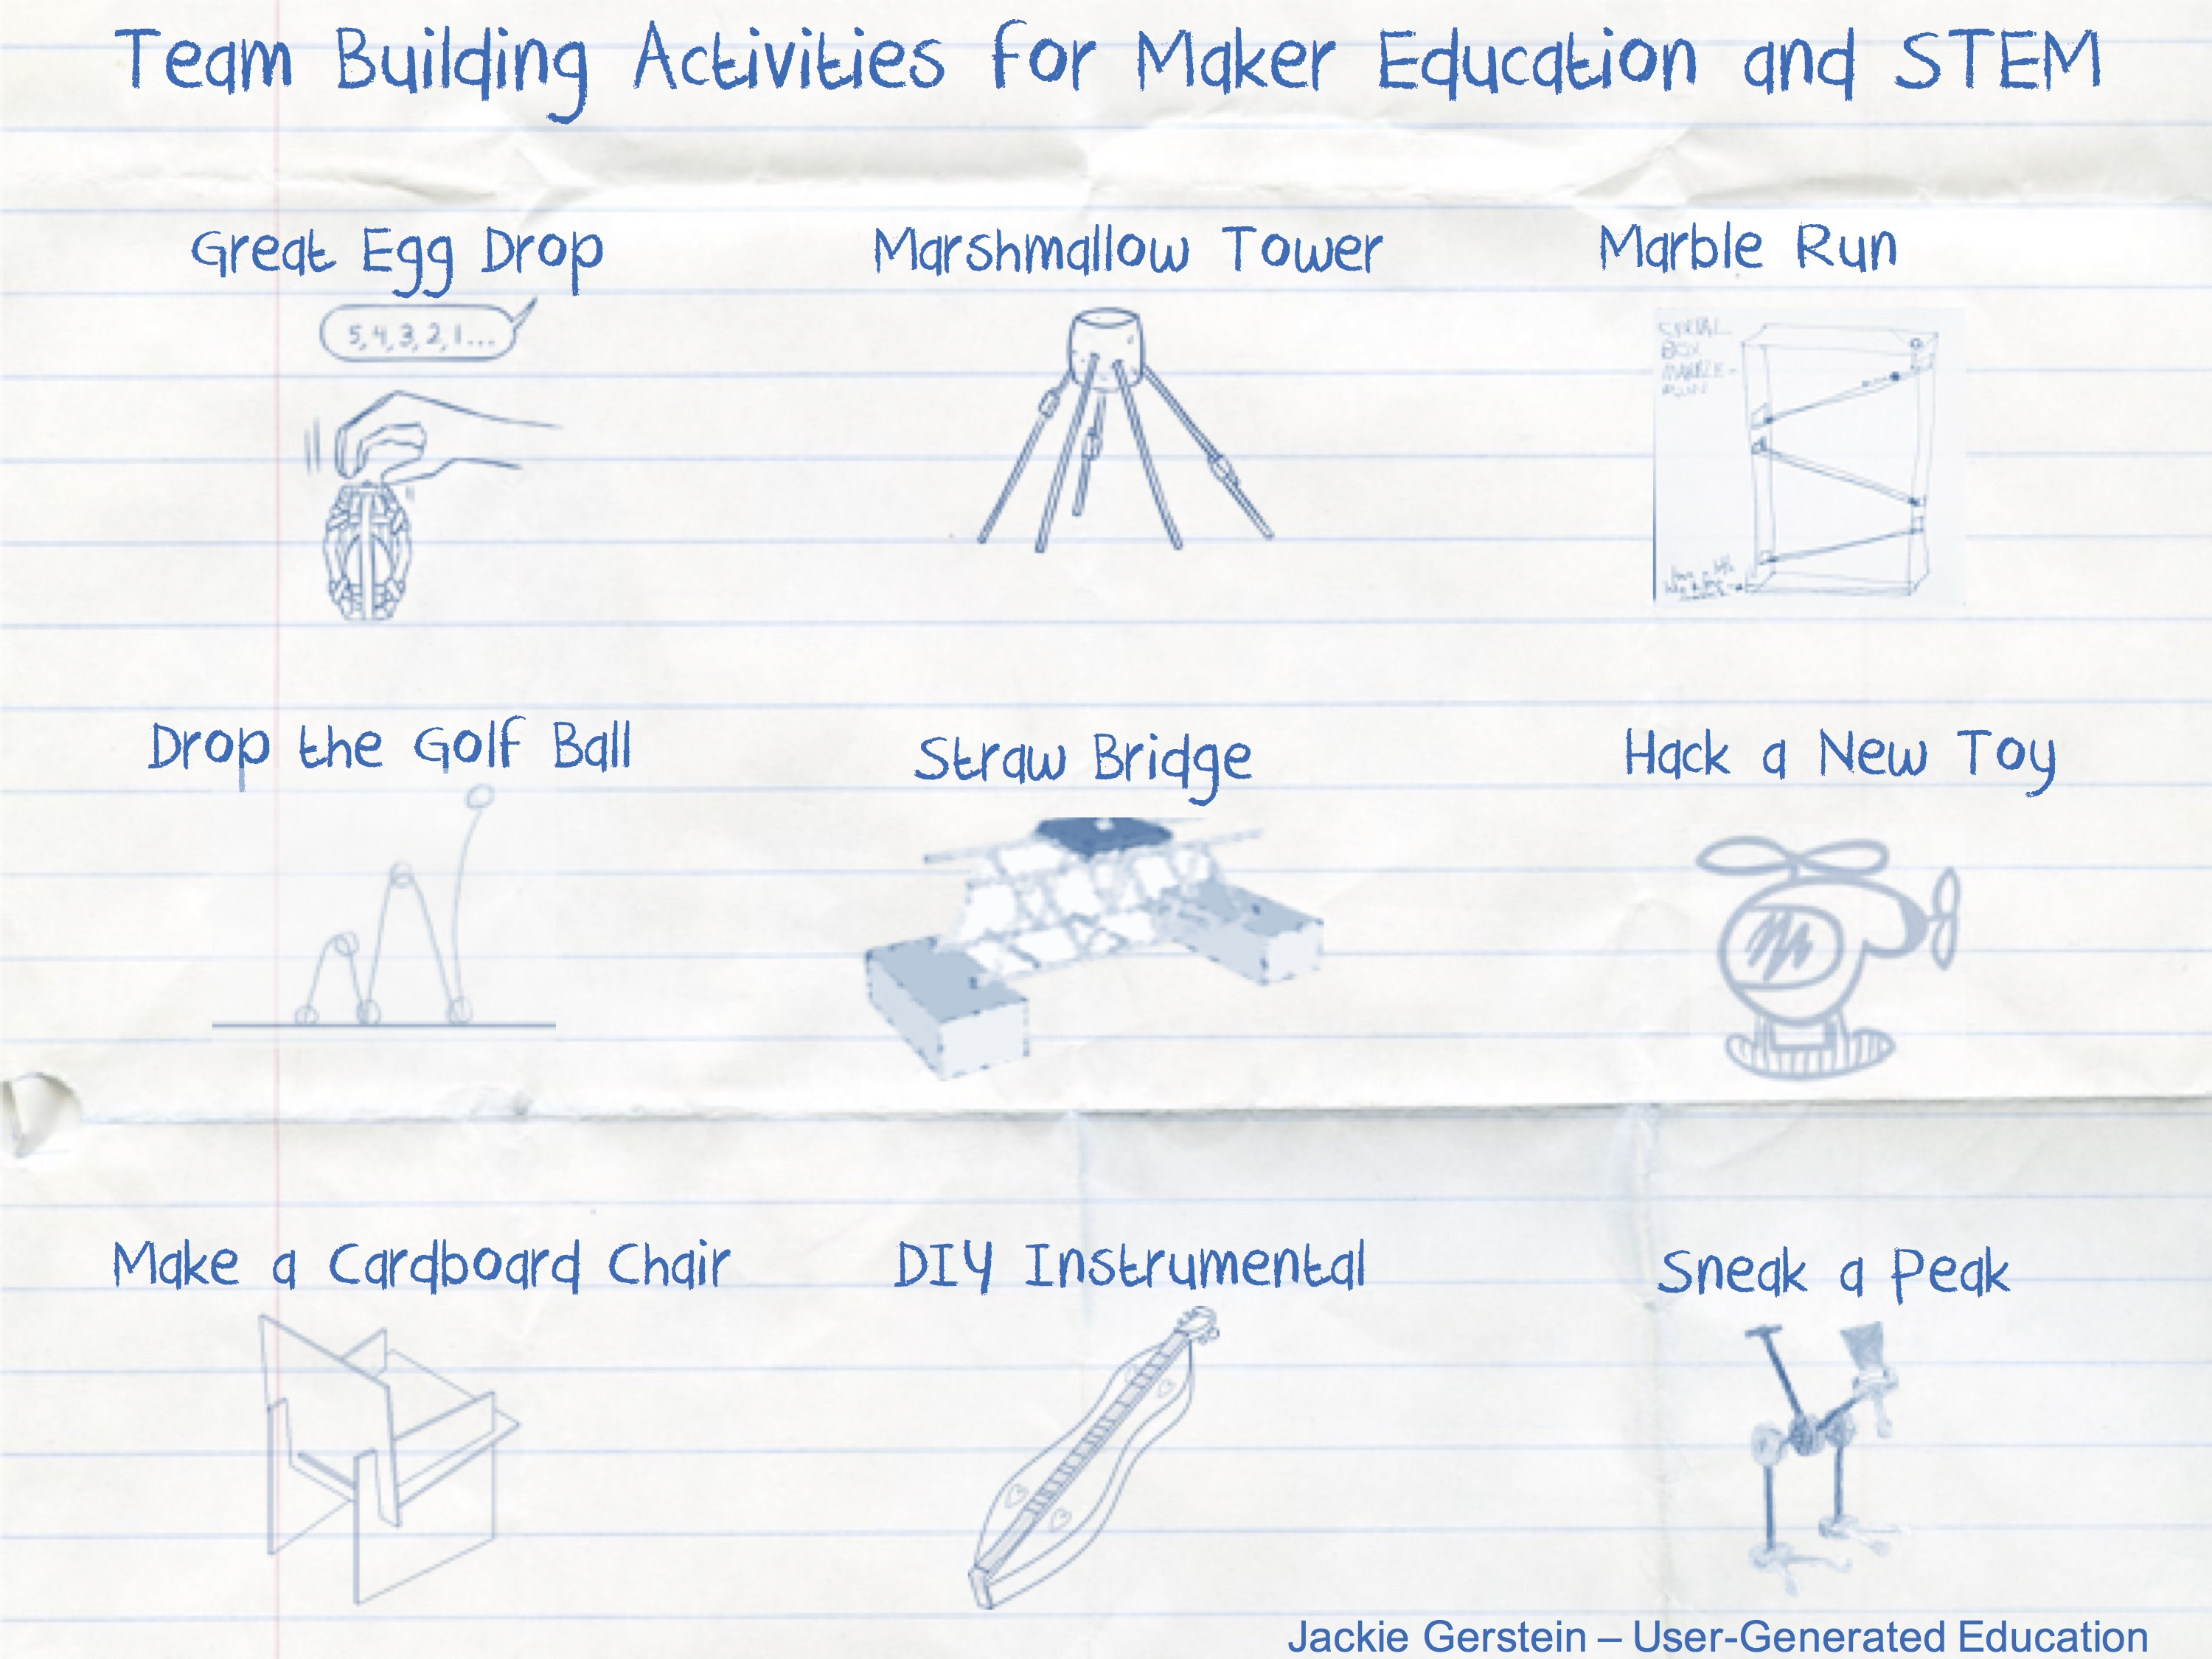 Team Building Activities That Support Maker Education